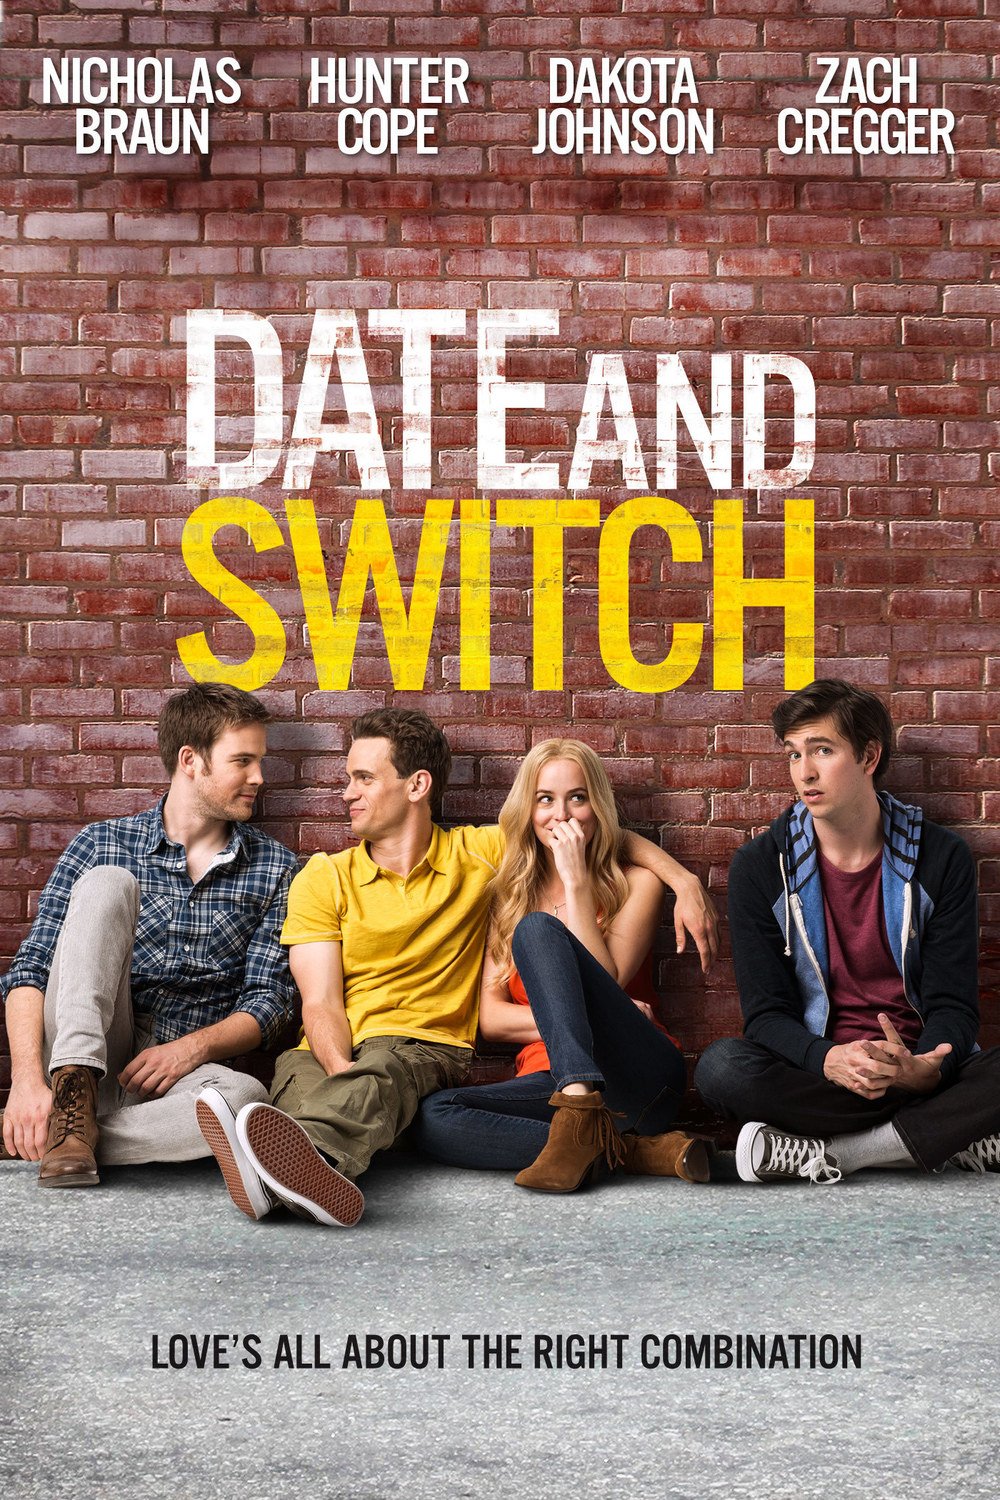 Date and Switch - DVD Covers & Labels by CoverCity